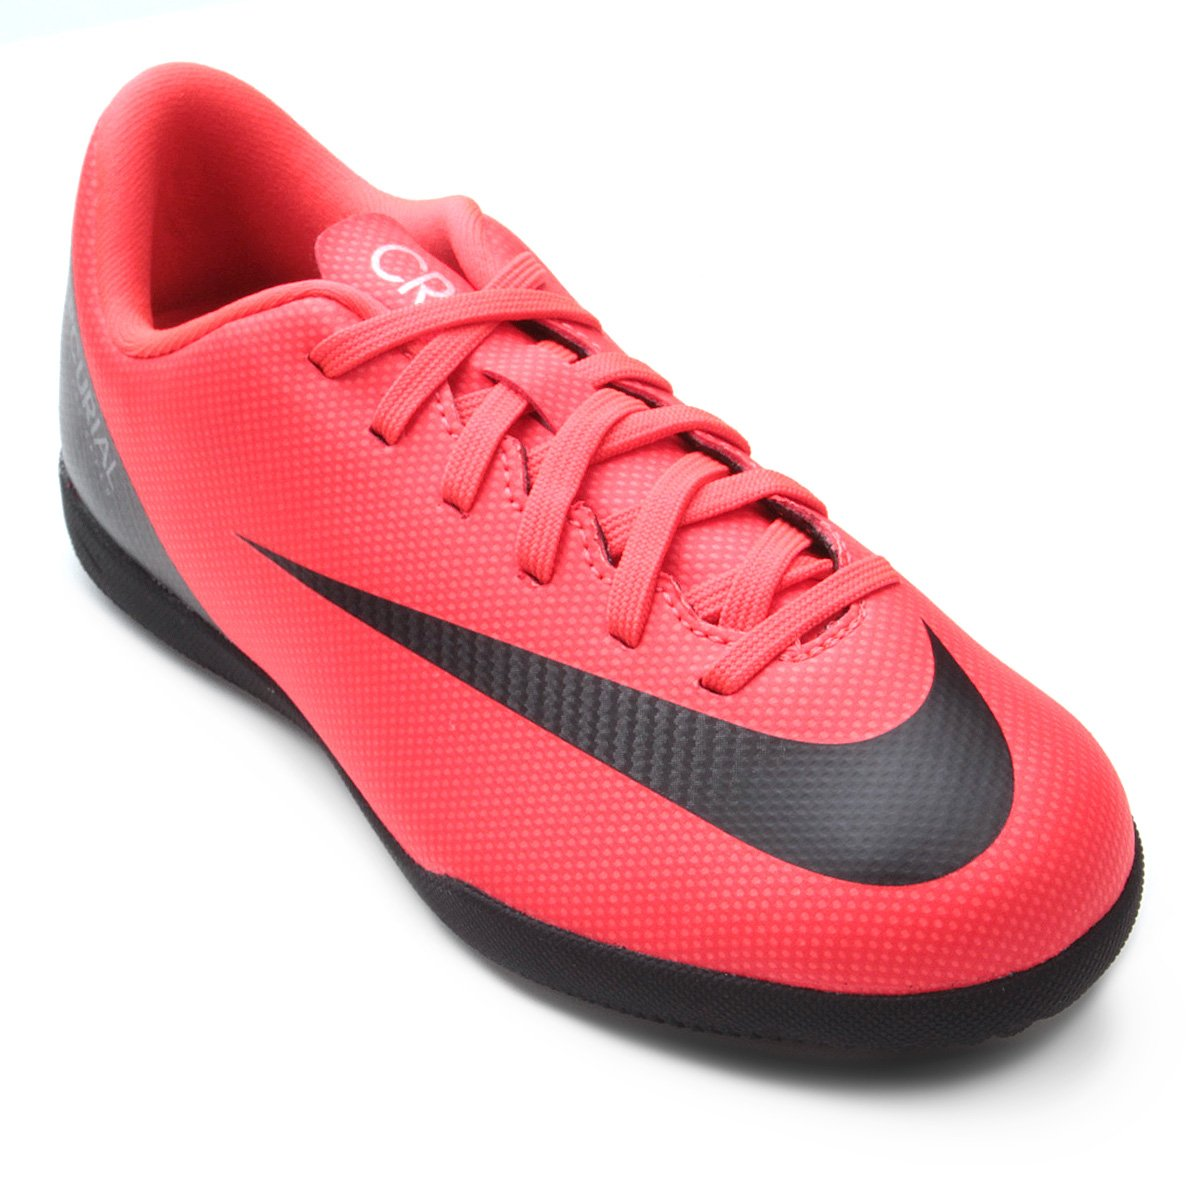 ... where can i buy chuteira futsal infantil nike mercurial vapor 12 club  gs cr7 ic vermelhopreto 3b6f2dcc0eacd